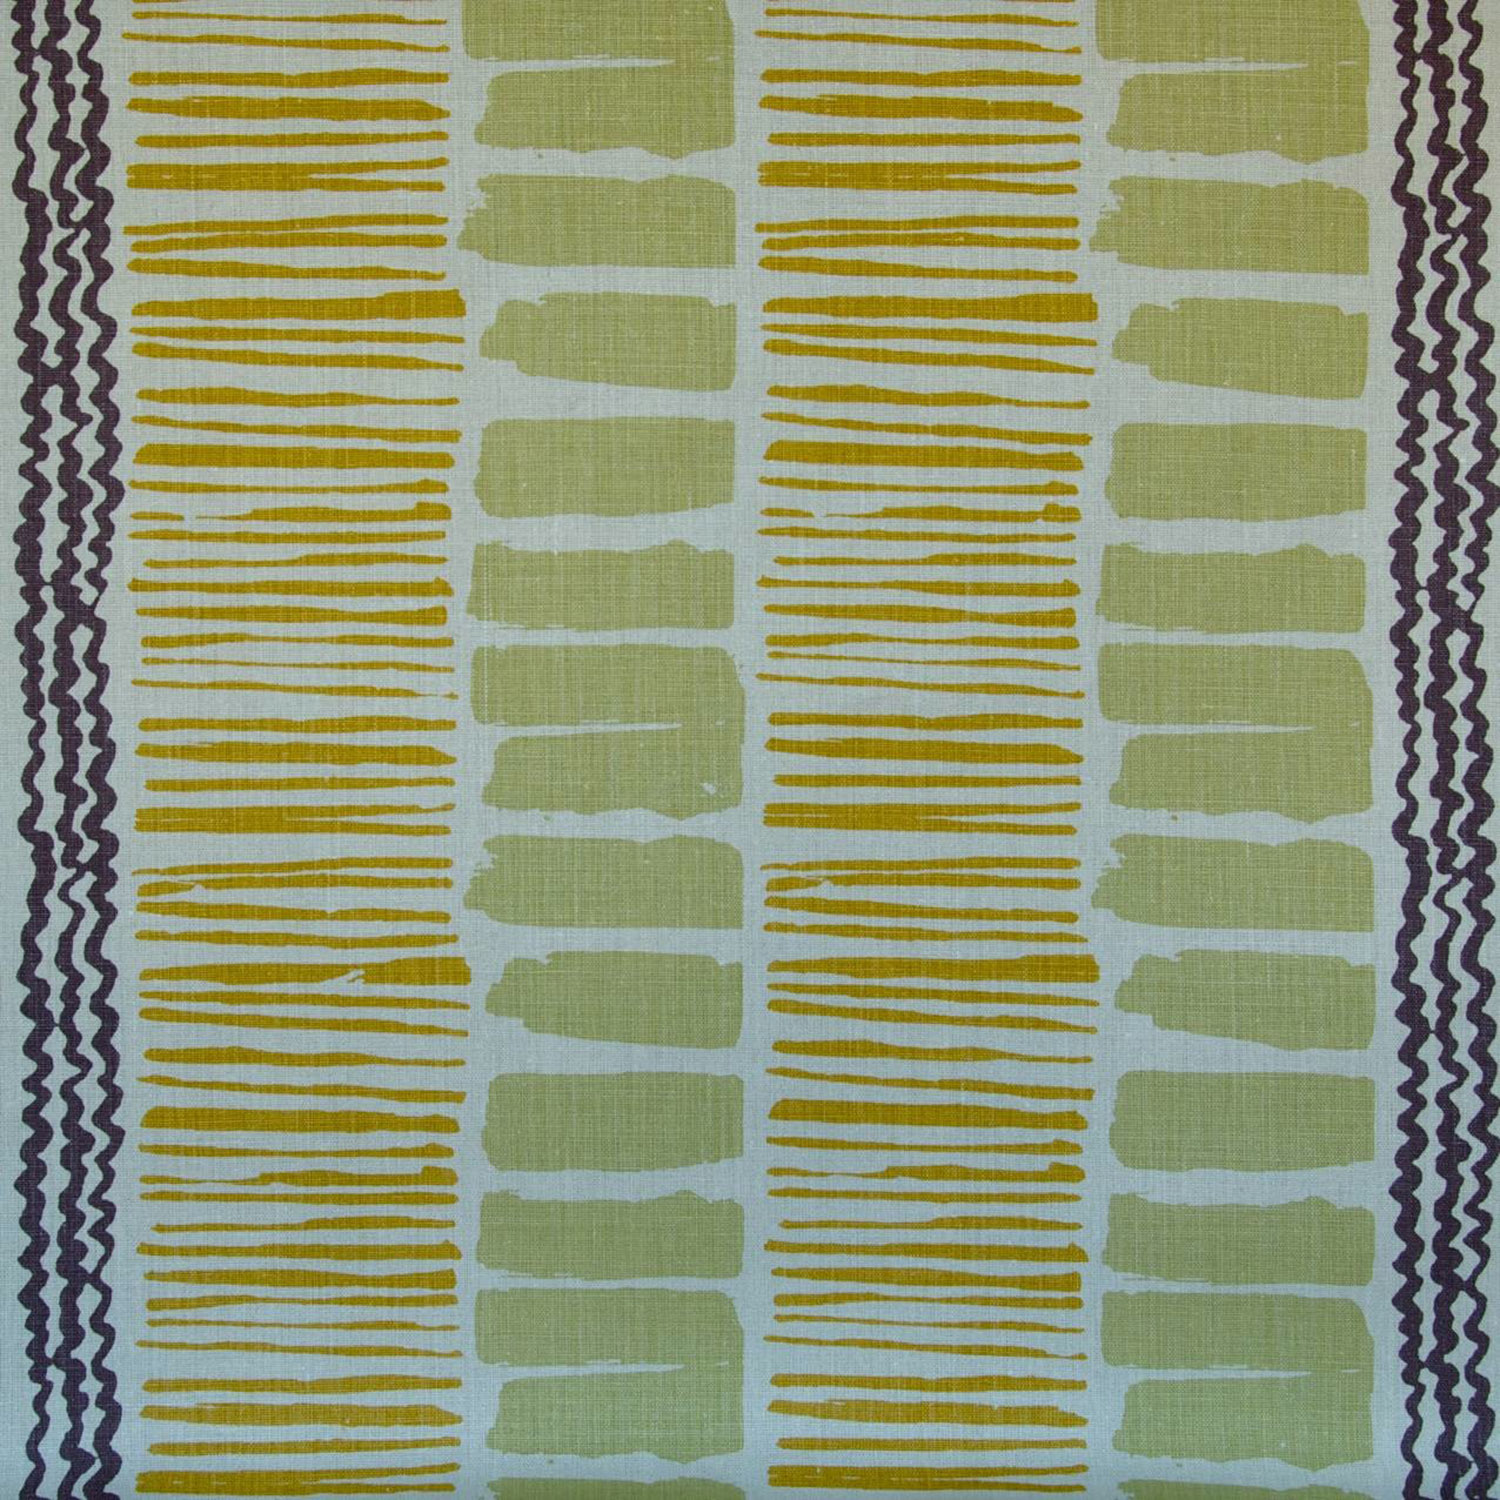 <p><strong>SALTAIRE</strong>lime/gold/plum/rustic 4400-03<a href=/collection-5/saltaire-lime-gold-plum-4400-03>More →</a></p>